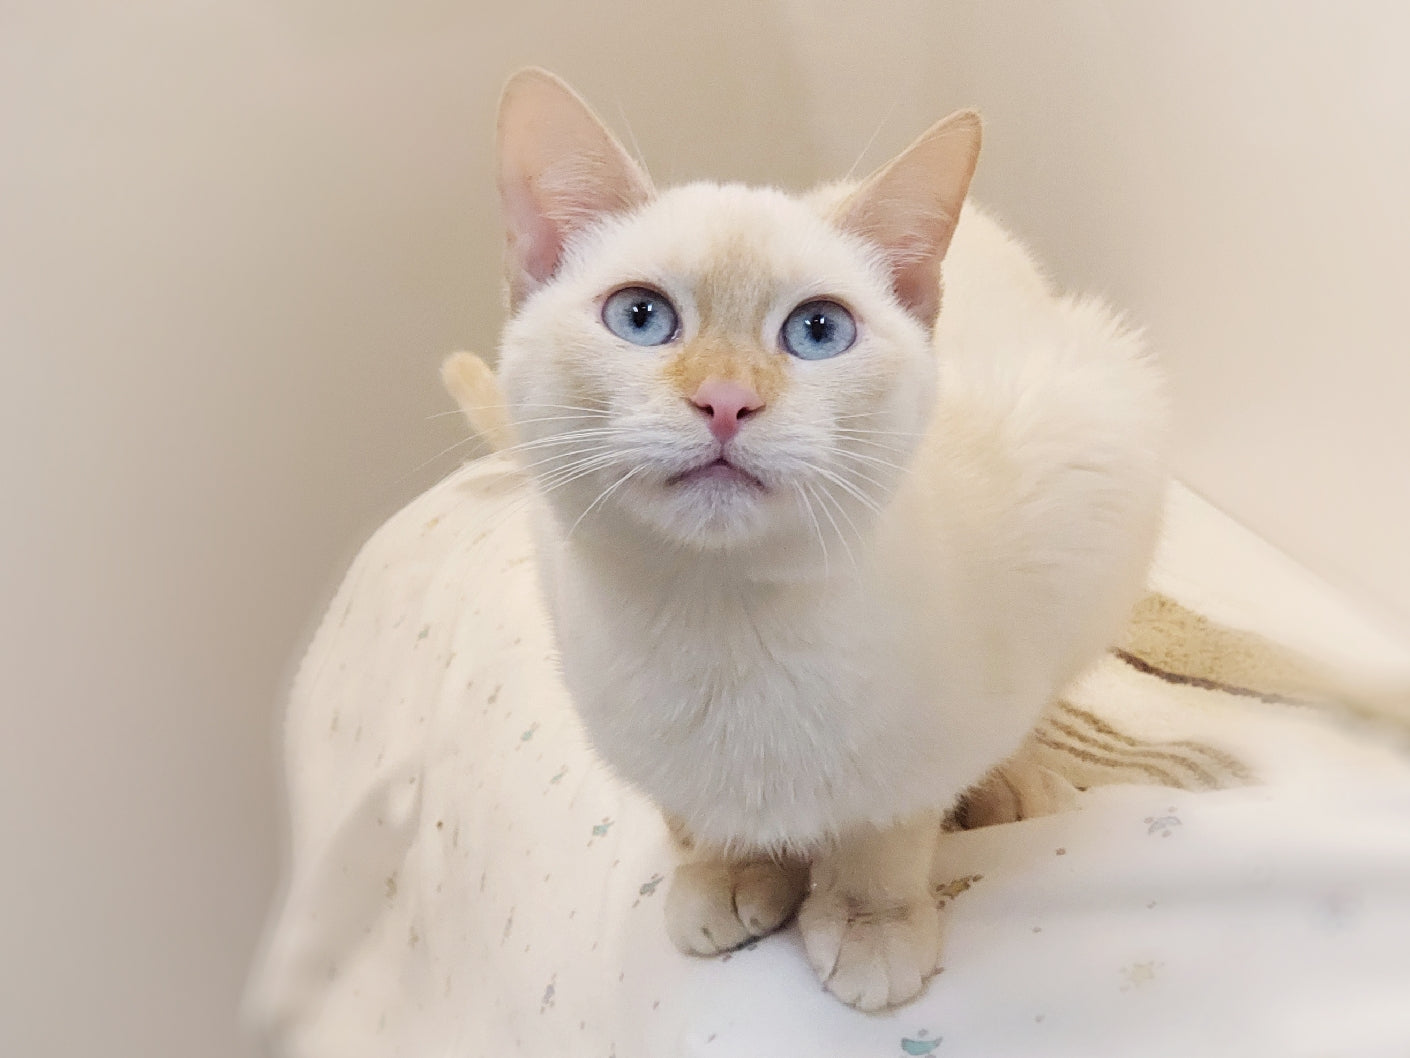 Snowy (Adopted)